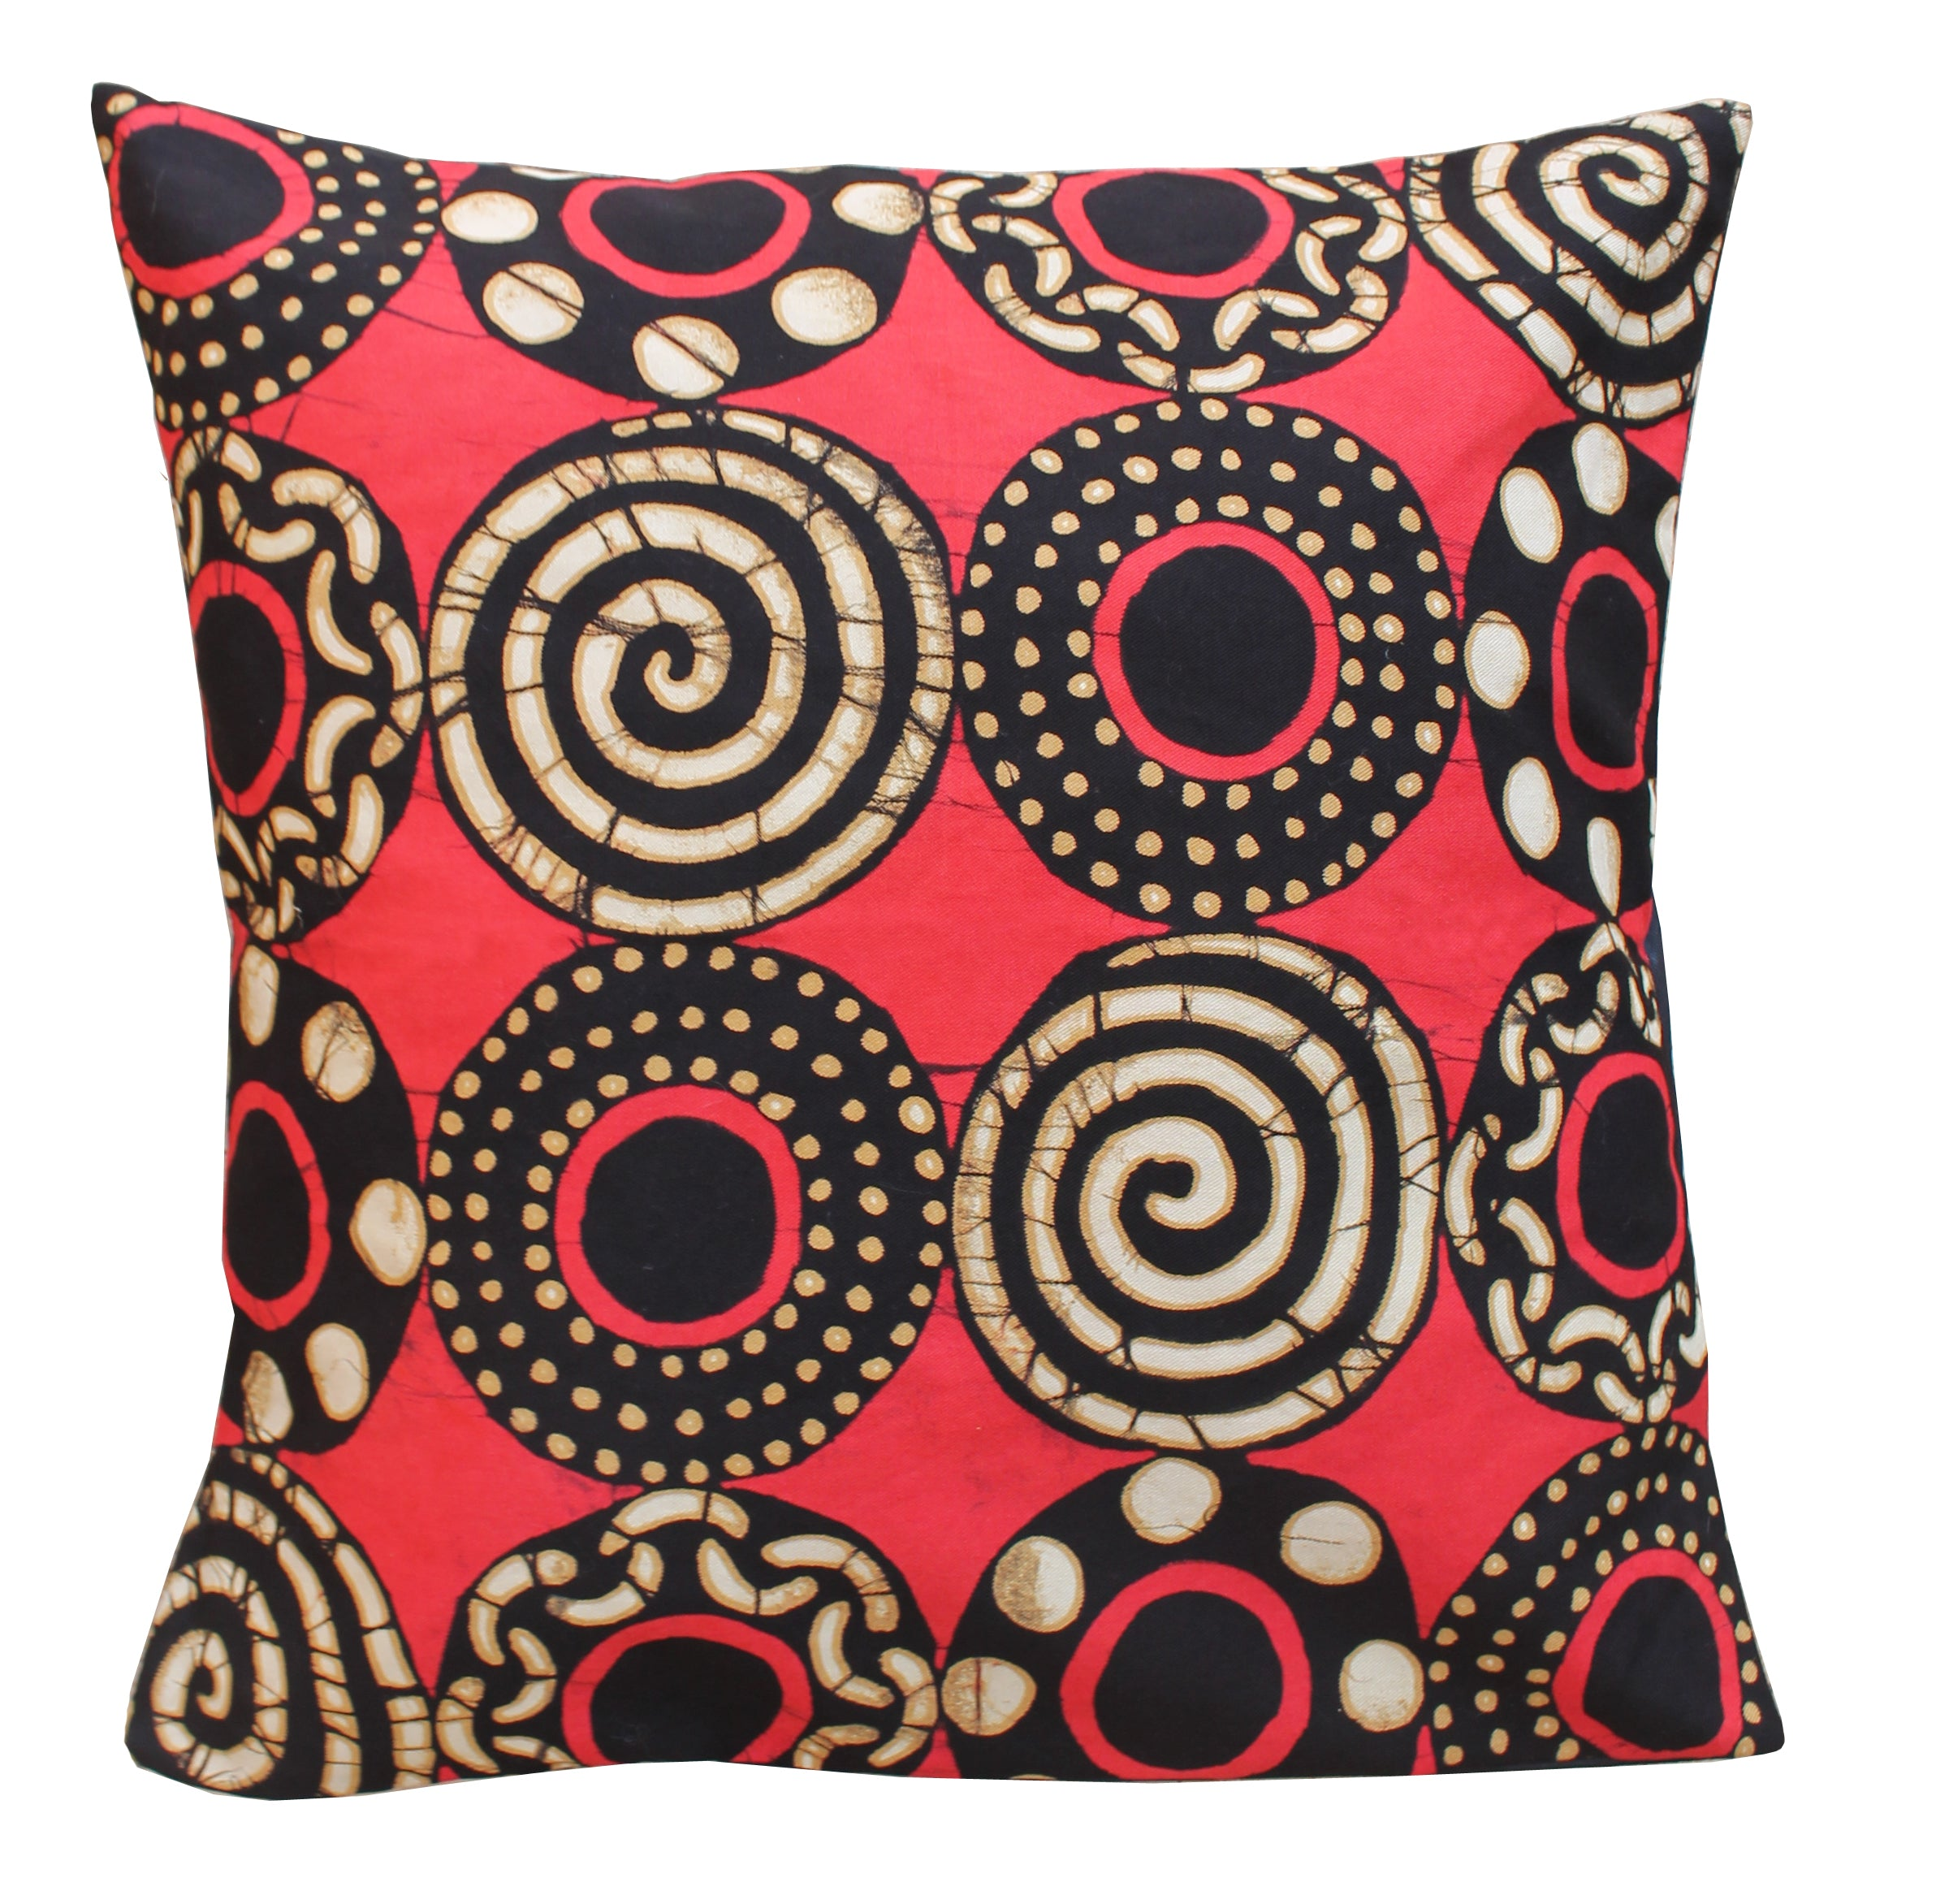 Throw Pillow Cover - Setting Sun Circles & Spirals